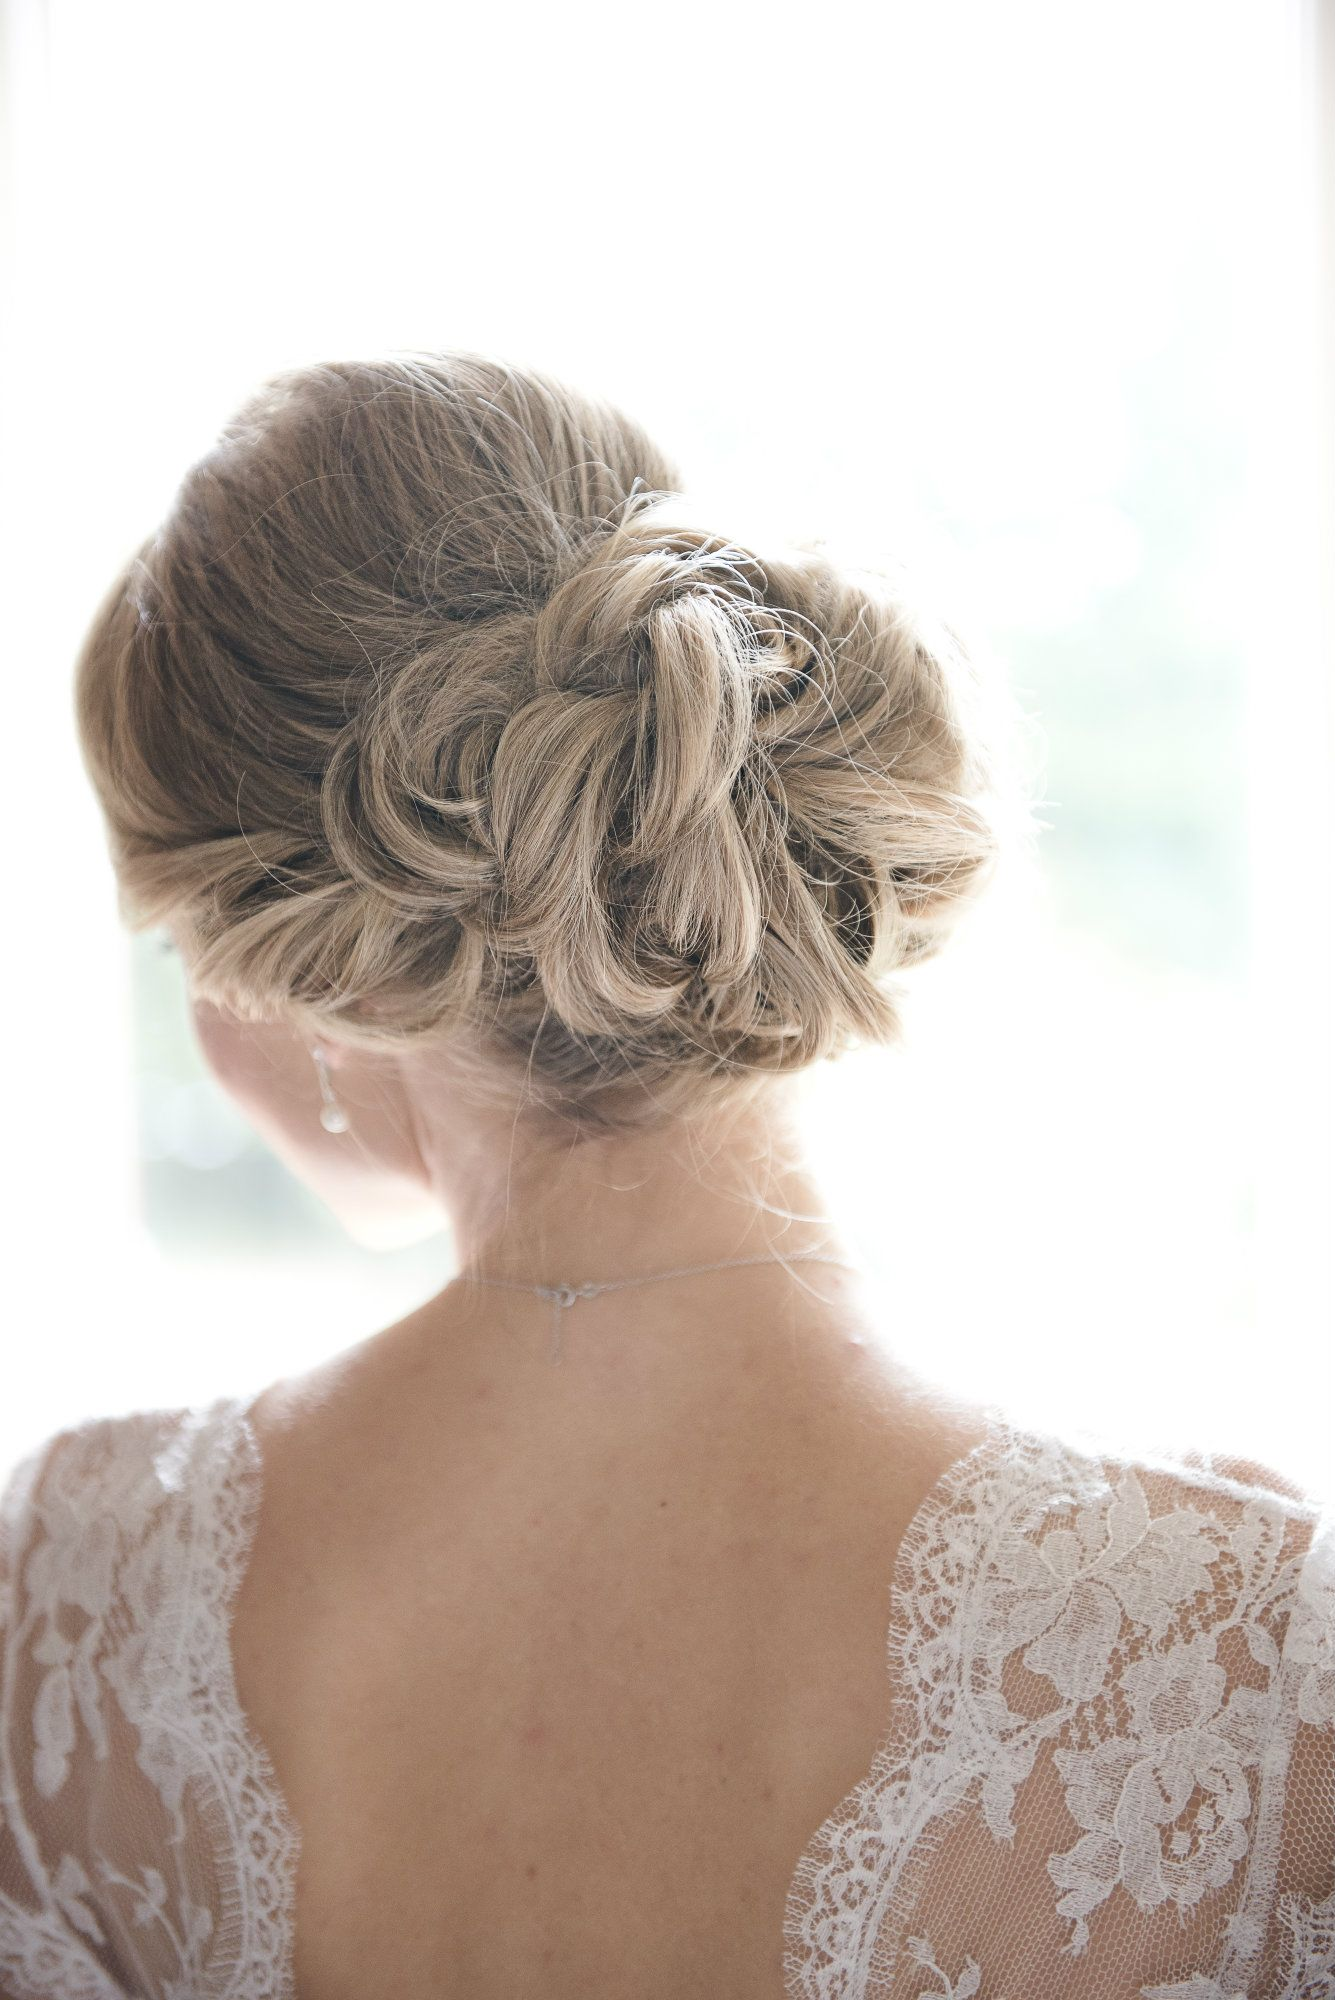 Cotswolds-bridal-hair-tylist-UK-HLN1